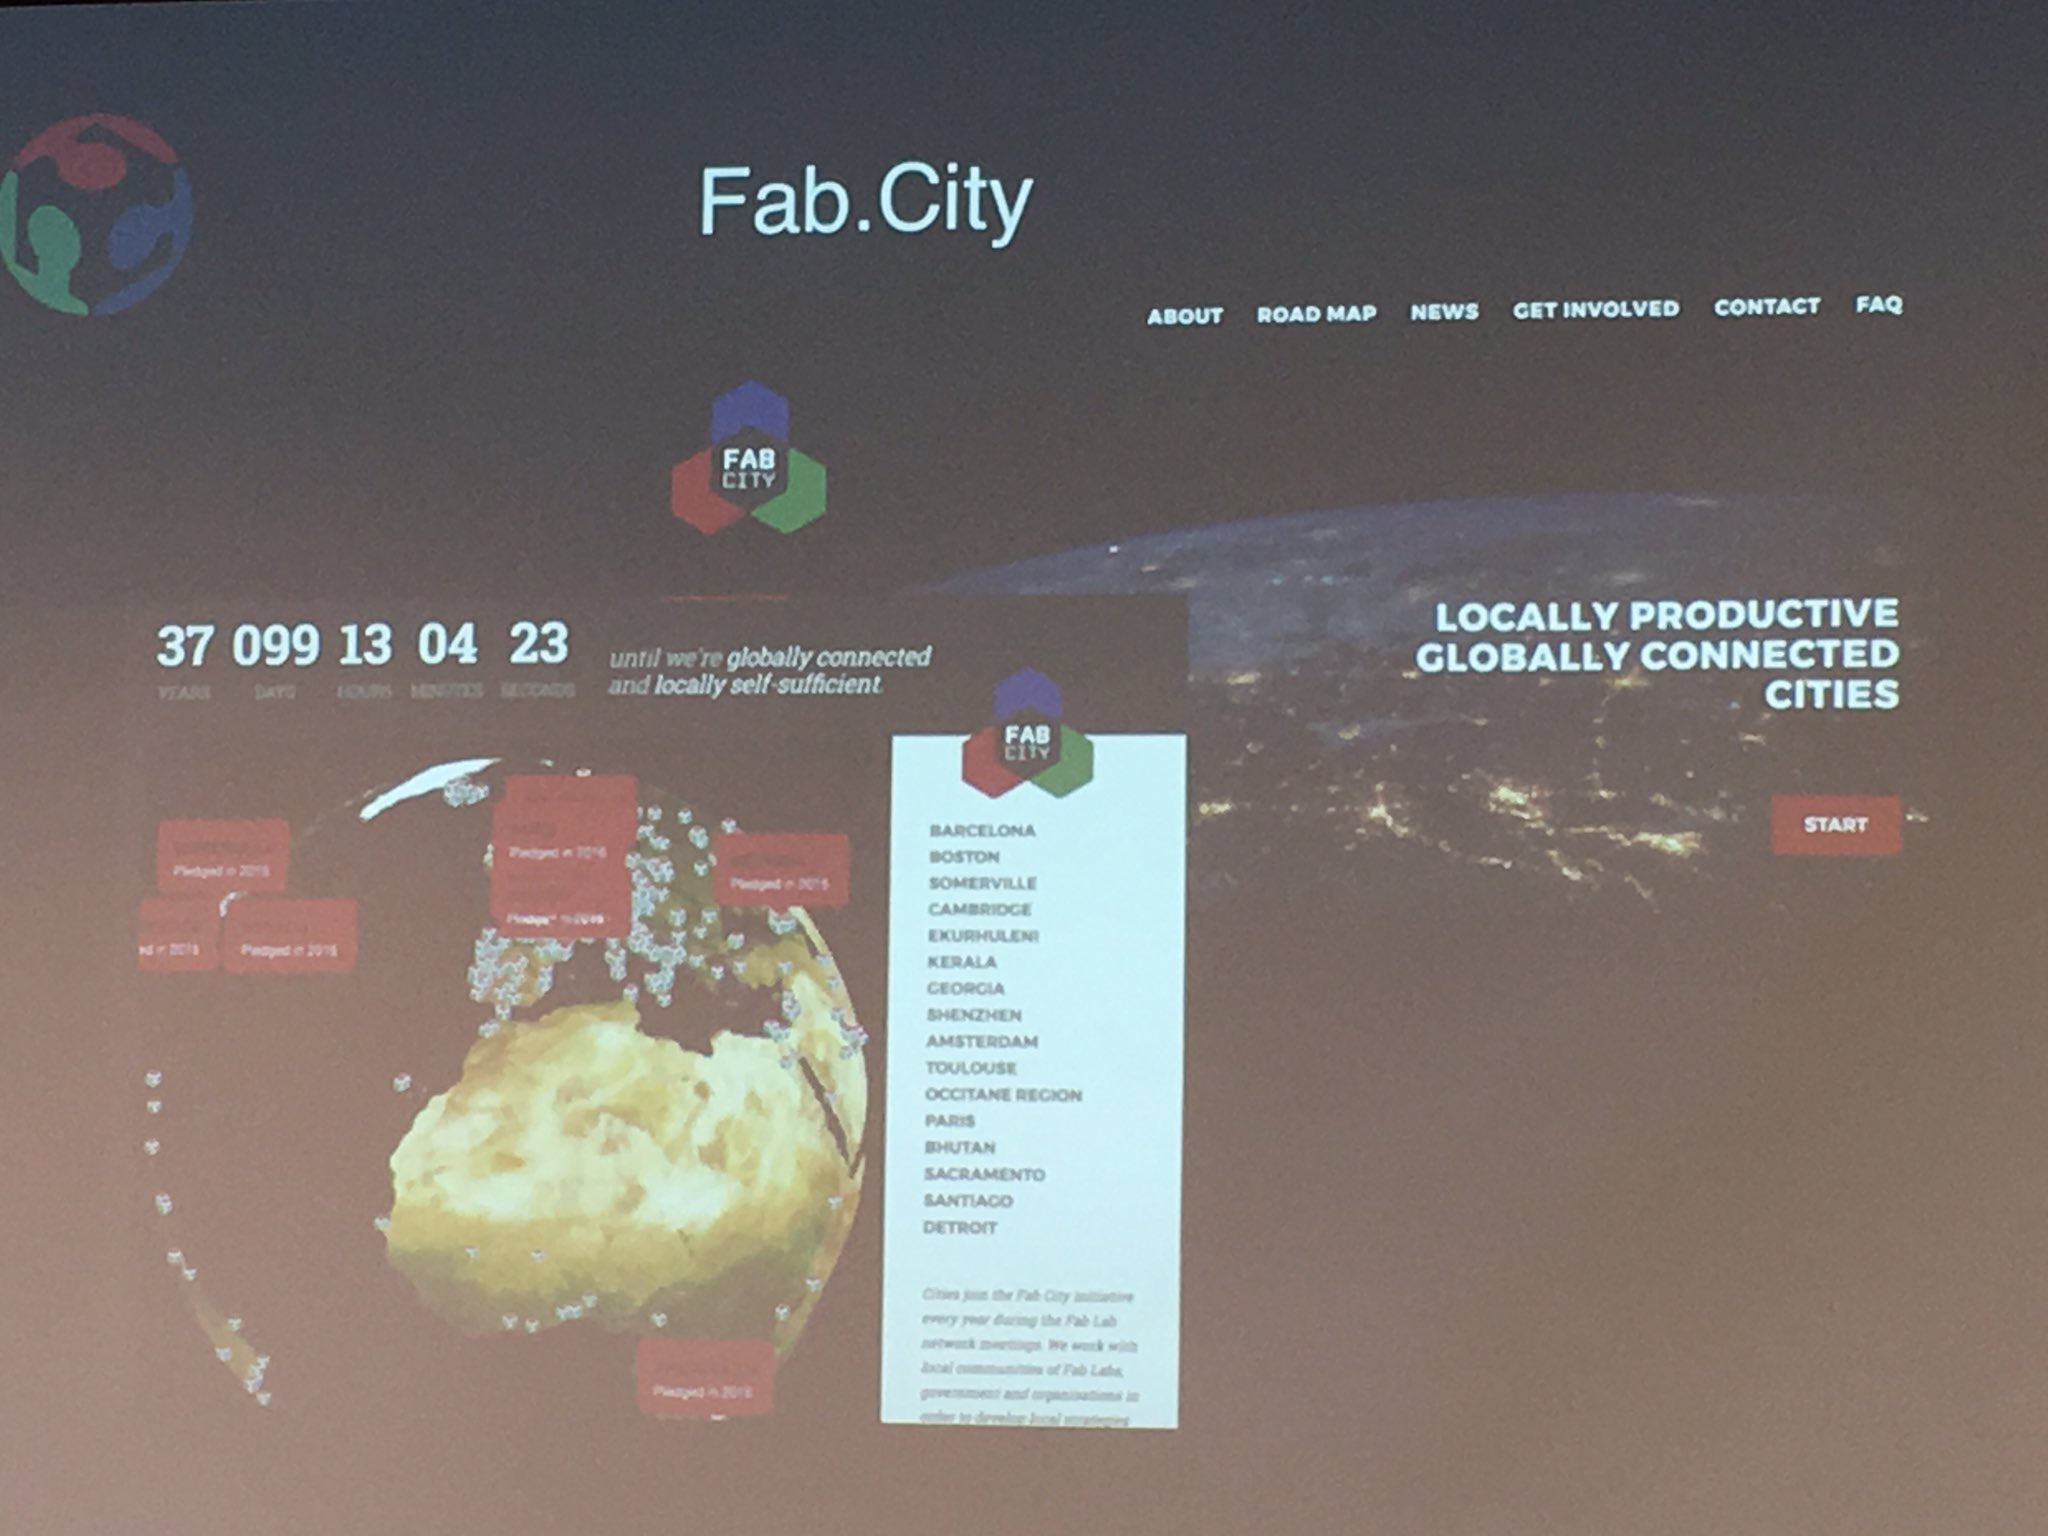 Fab City and the #Maker movement goes global and connects us all #DigiFabCon https://t.co/gfFDUksAeM